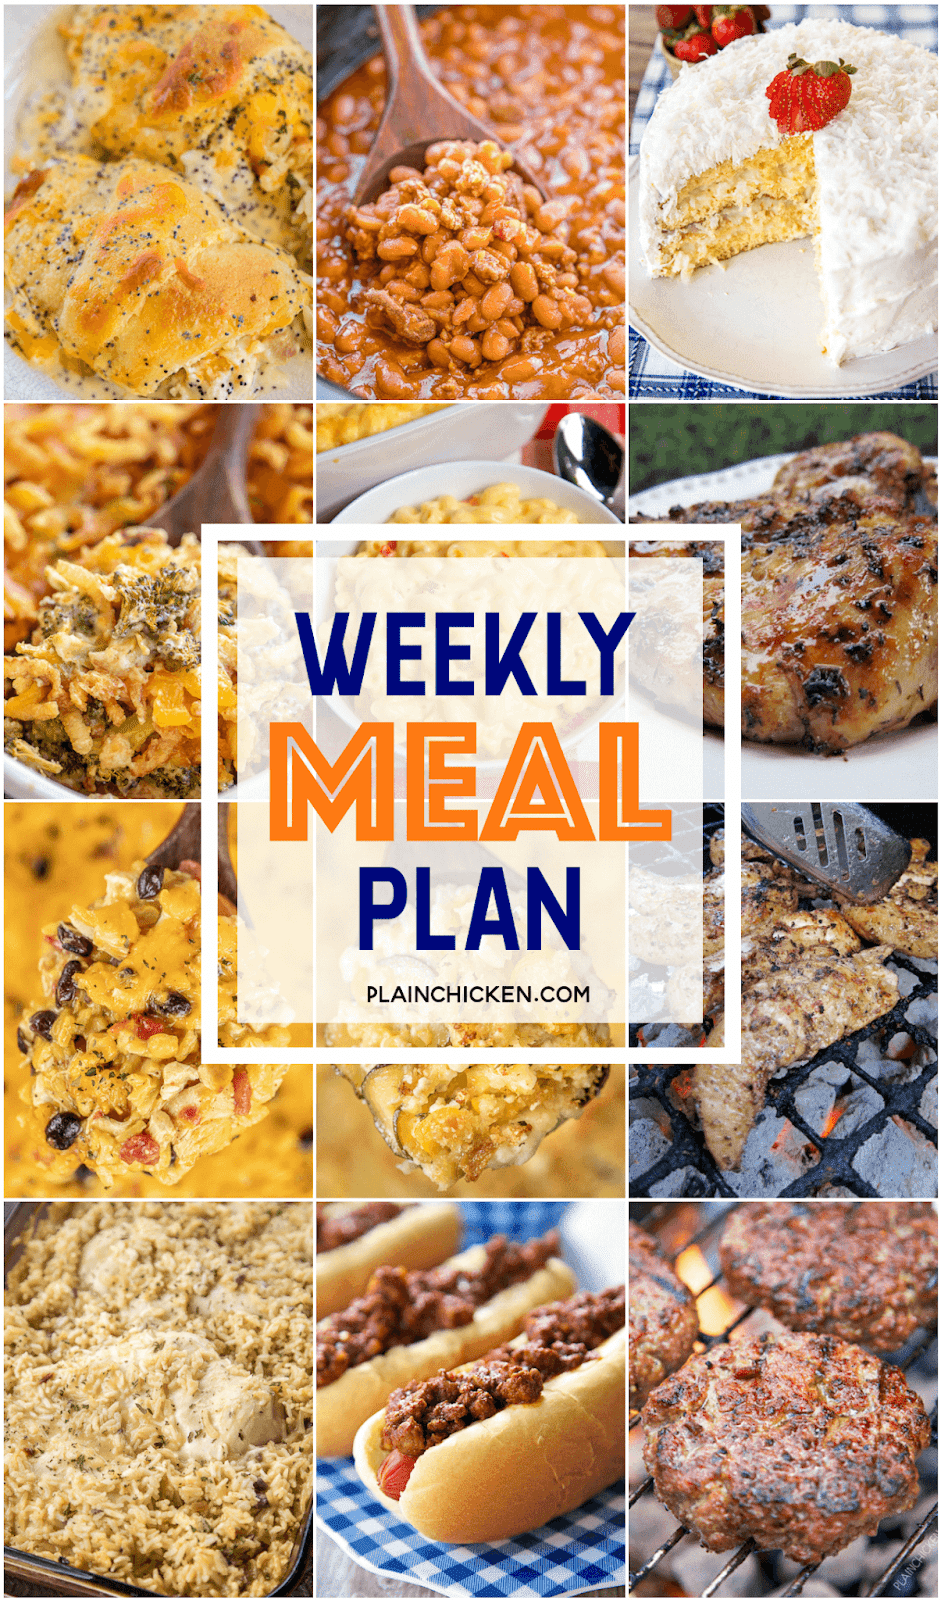 What's For Dinner Weekly Meal Plan   Plain Chicken®   Week meal ...